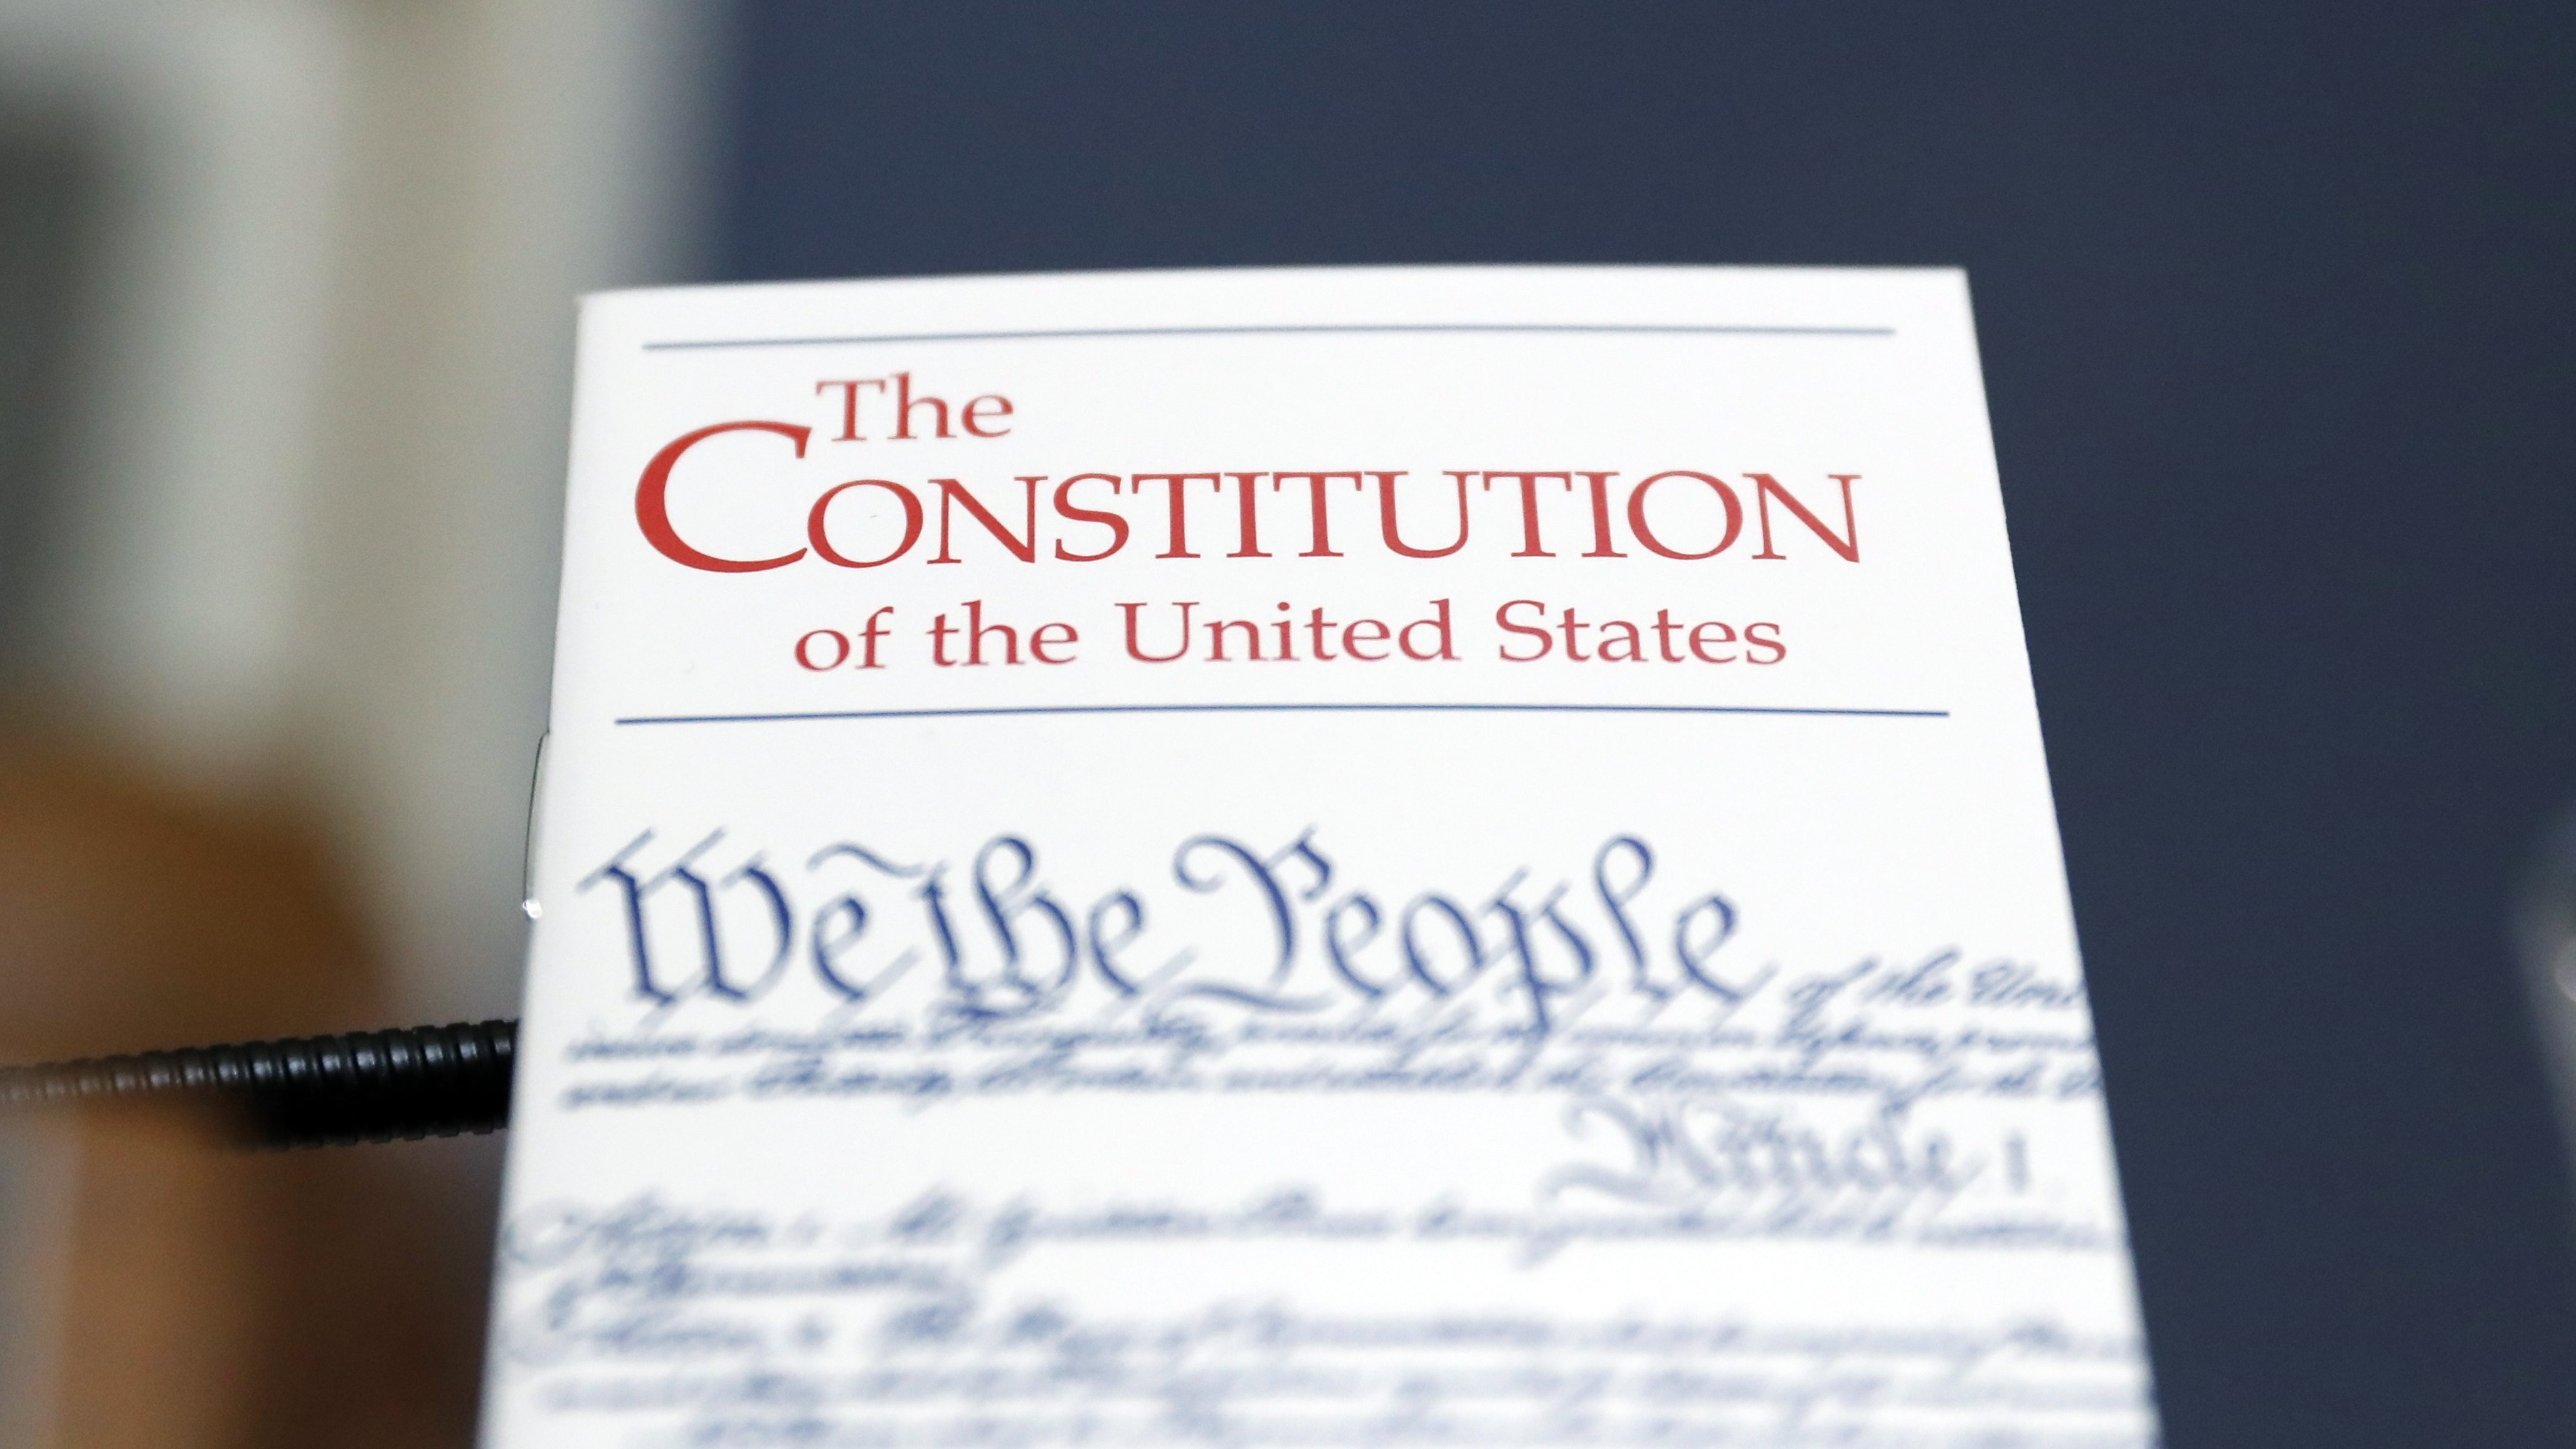 Most of the world's constitutions guarantee more rights than America's